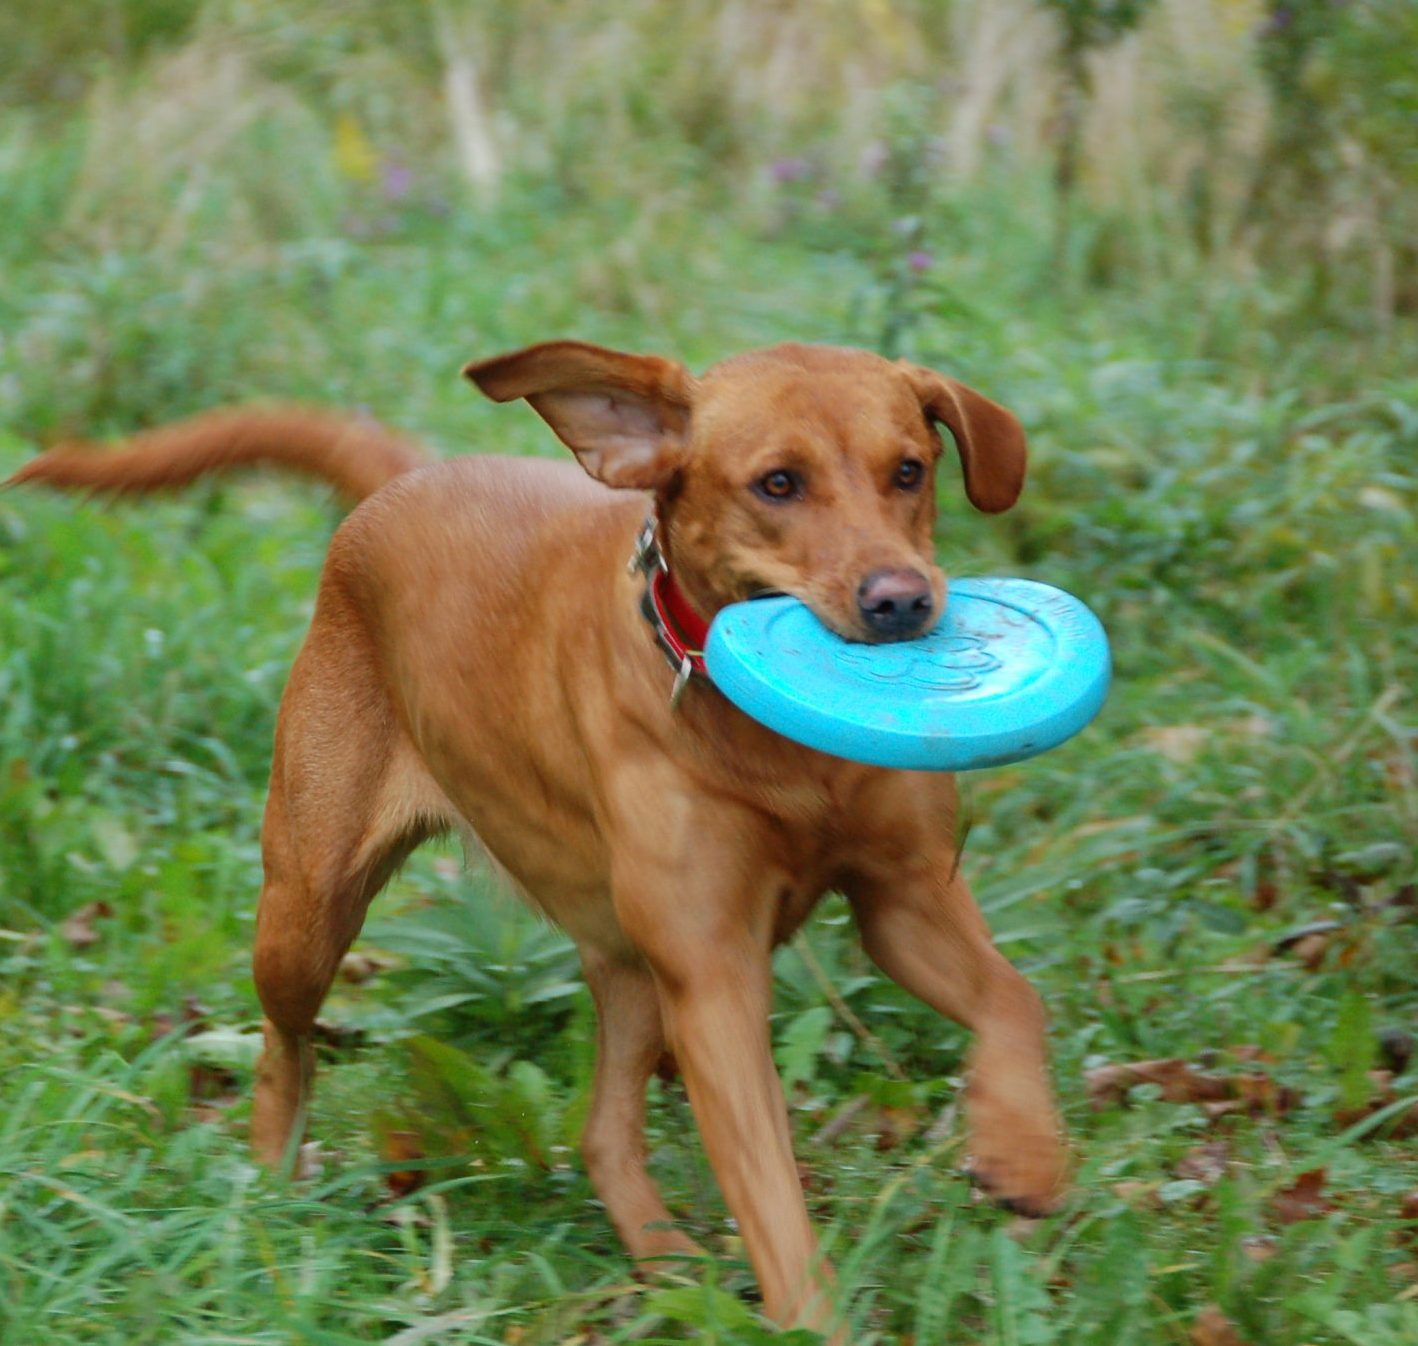 Labrador Retriever fetching Frisbee